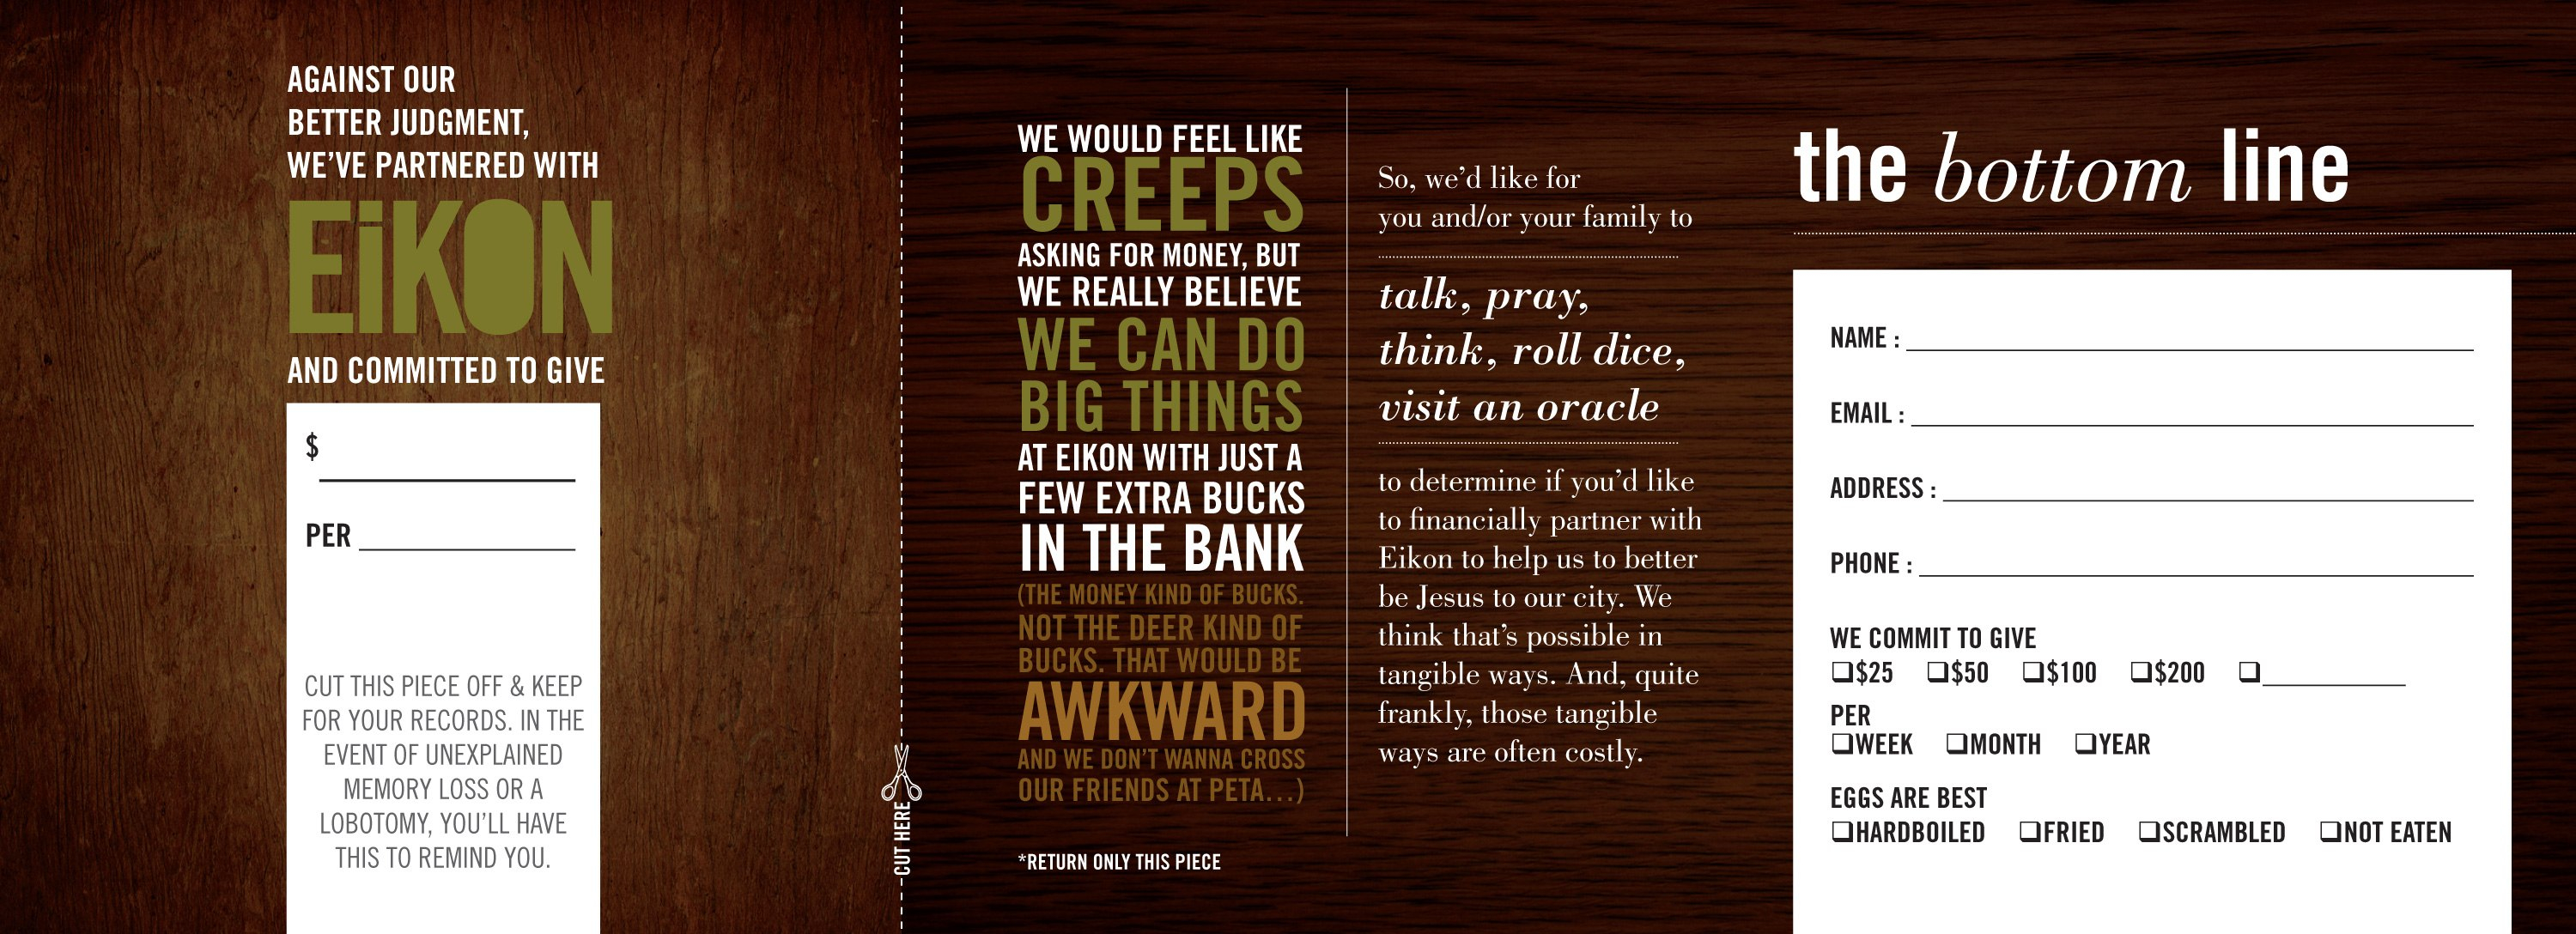 The Weirdest Free Downloadable Church Pledge Card You Might Have Within Pledge Card Template For Church